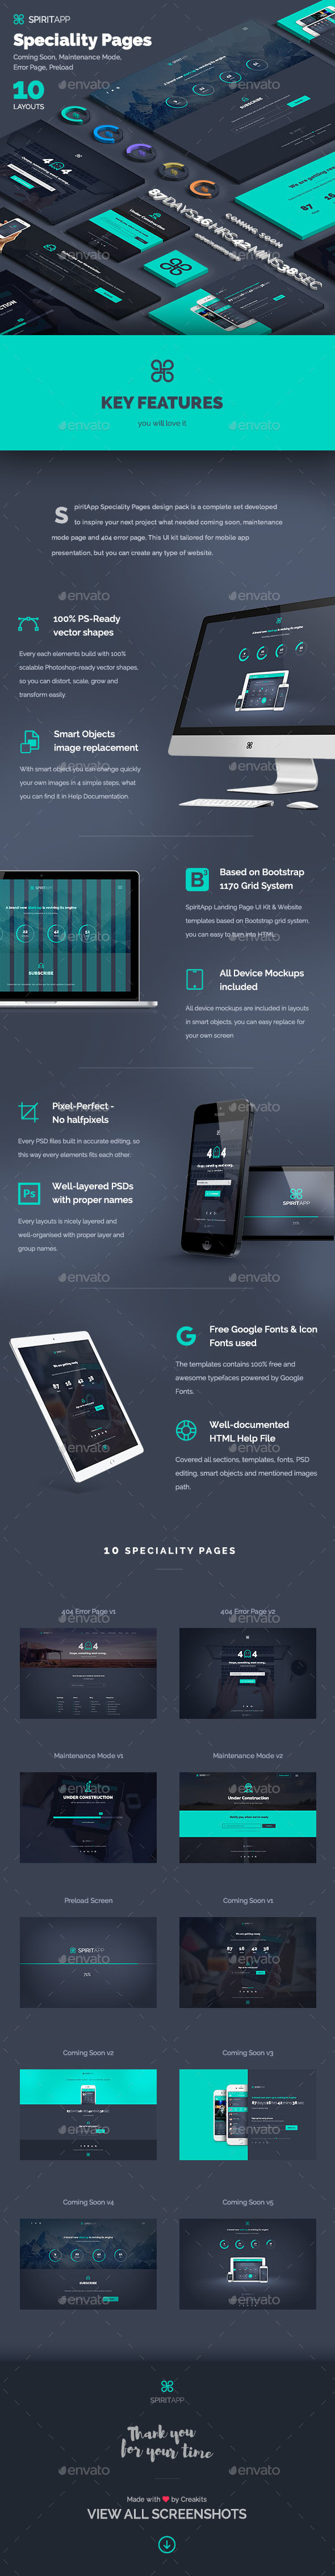 SpiritApp Speciality Pages by AddtoFavorites (layered 404 page template)